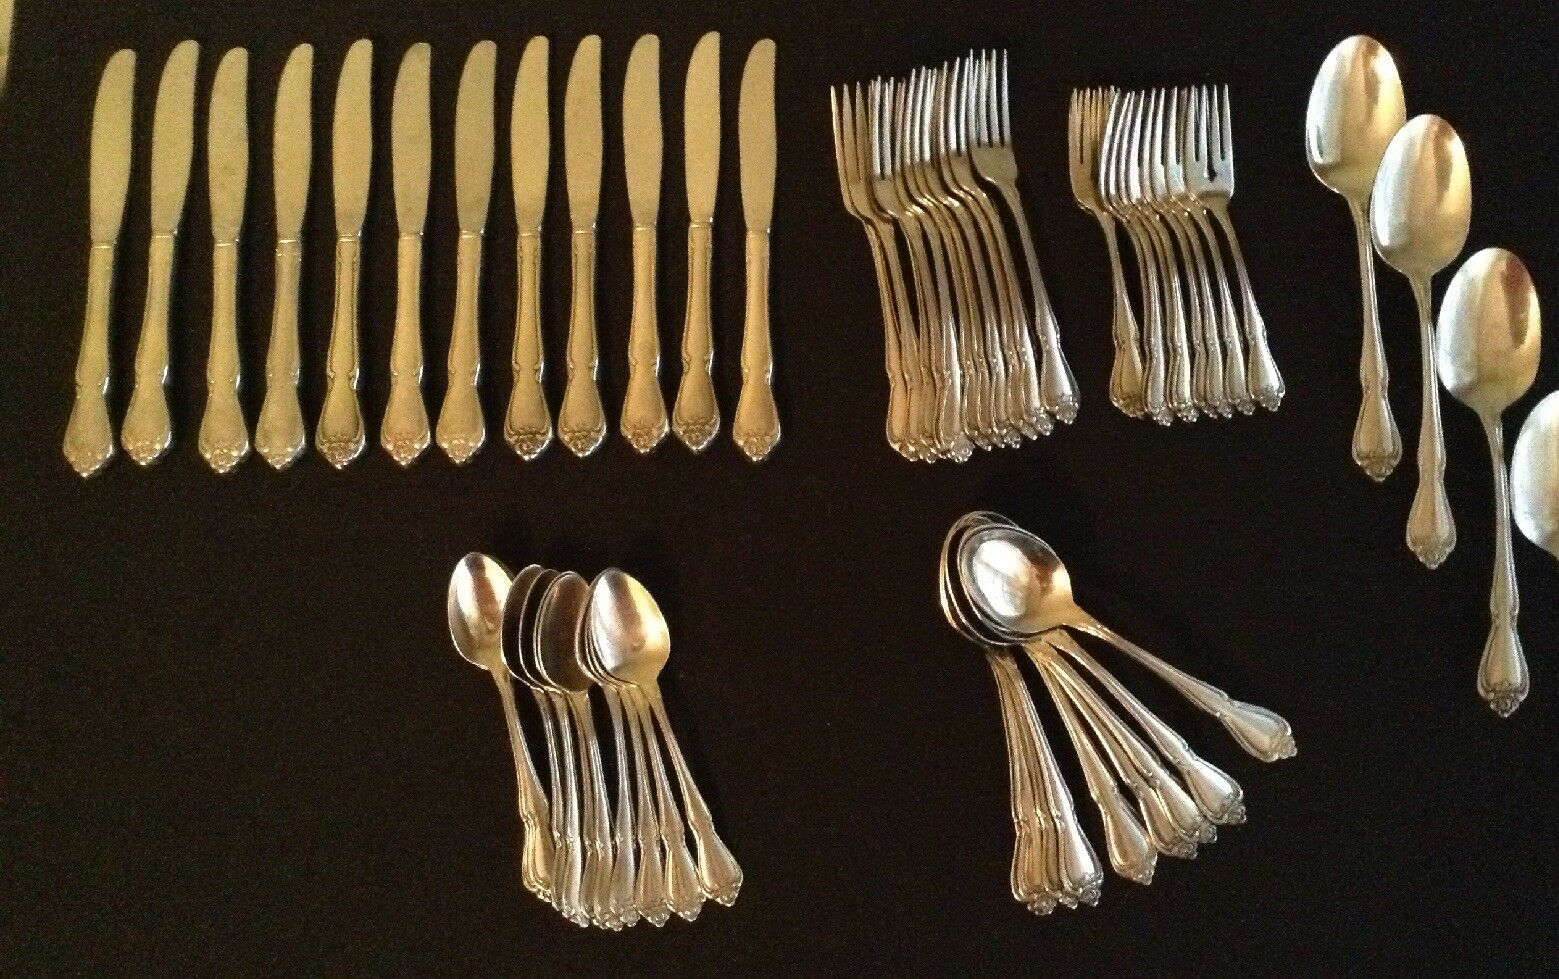 Oneida stainless arbor rose 59 pieces 10 place settings + extras